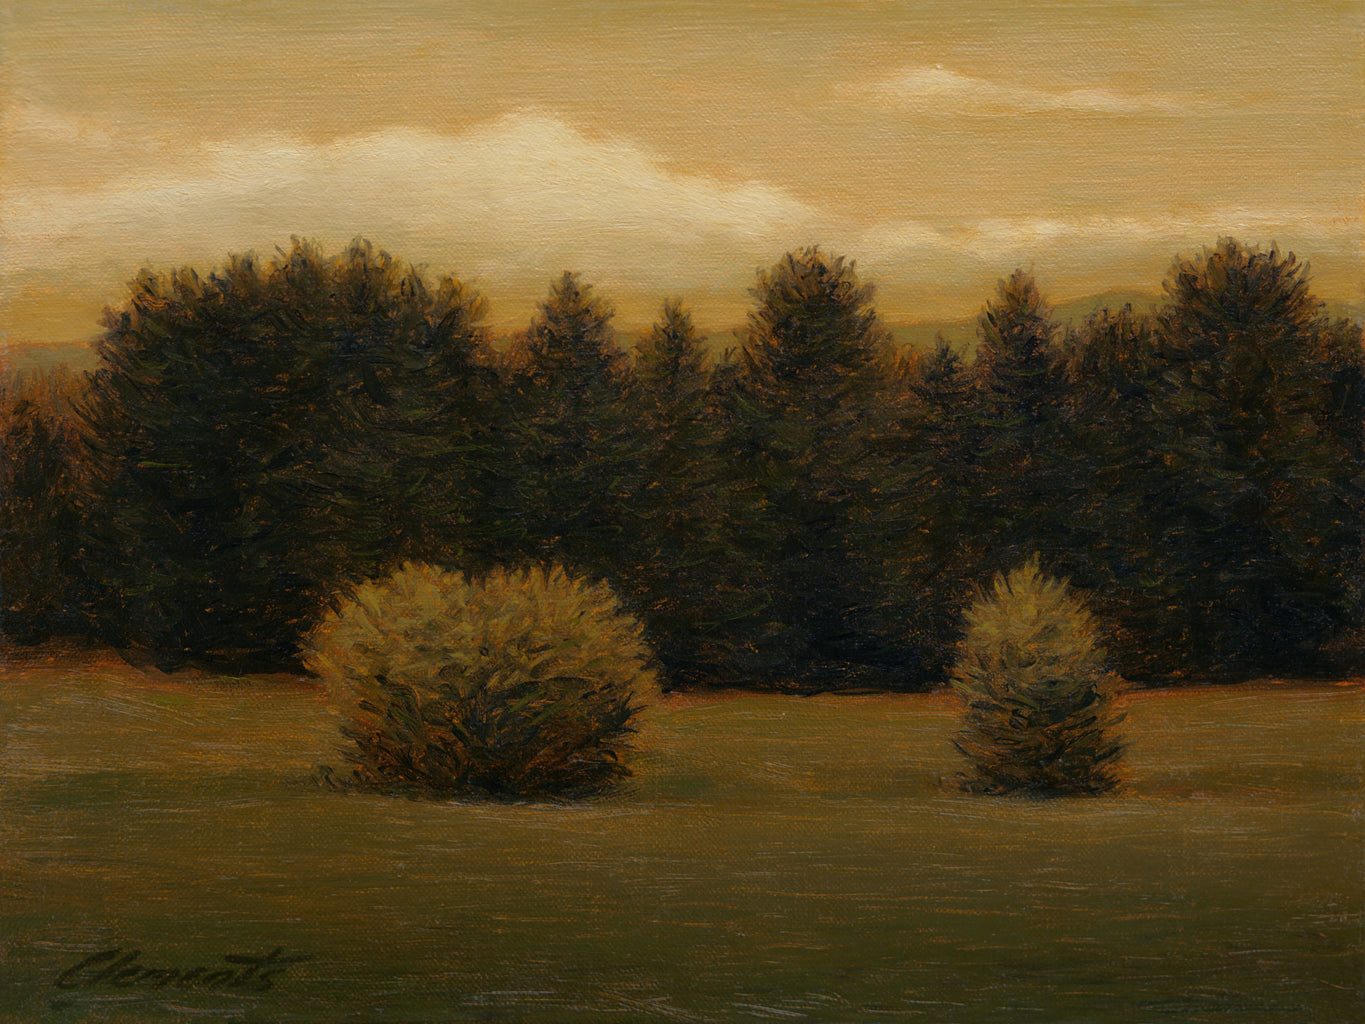 Idaho Evening Moody Landscape Painting Giclée Print